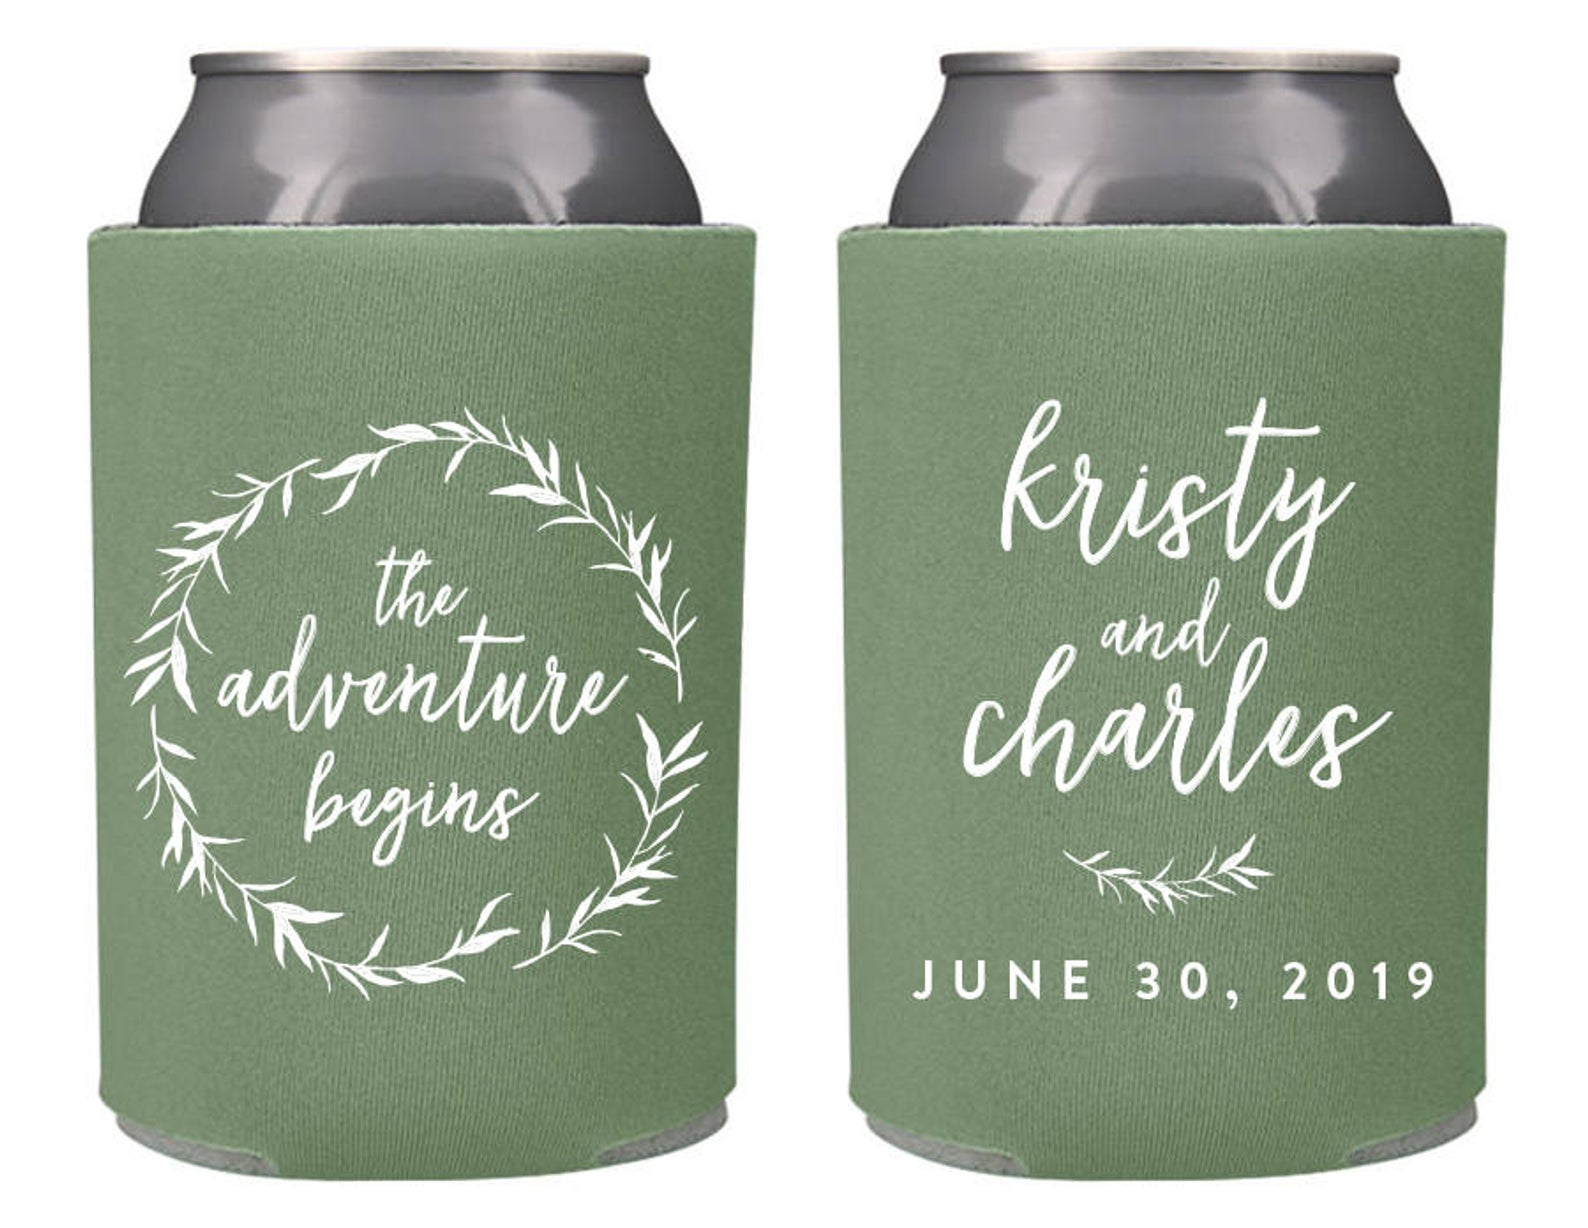 Custom Wedding Can Coolers from Splendid Sips